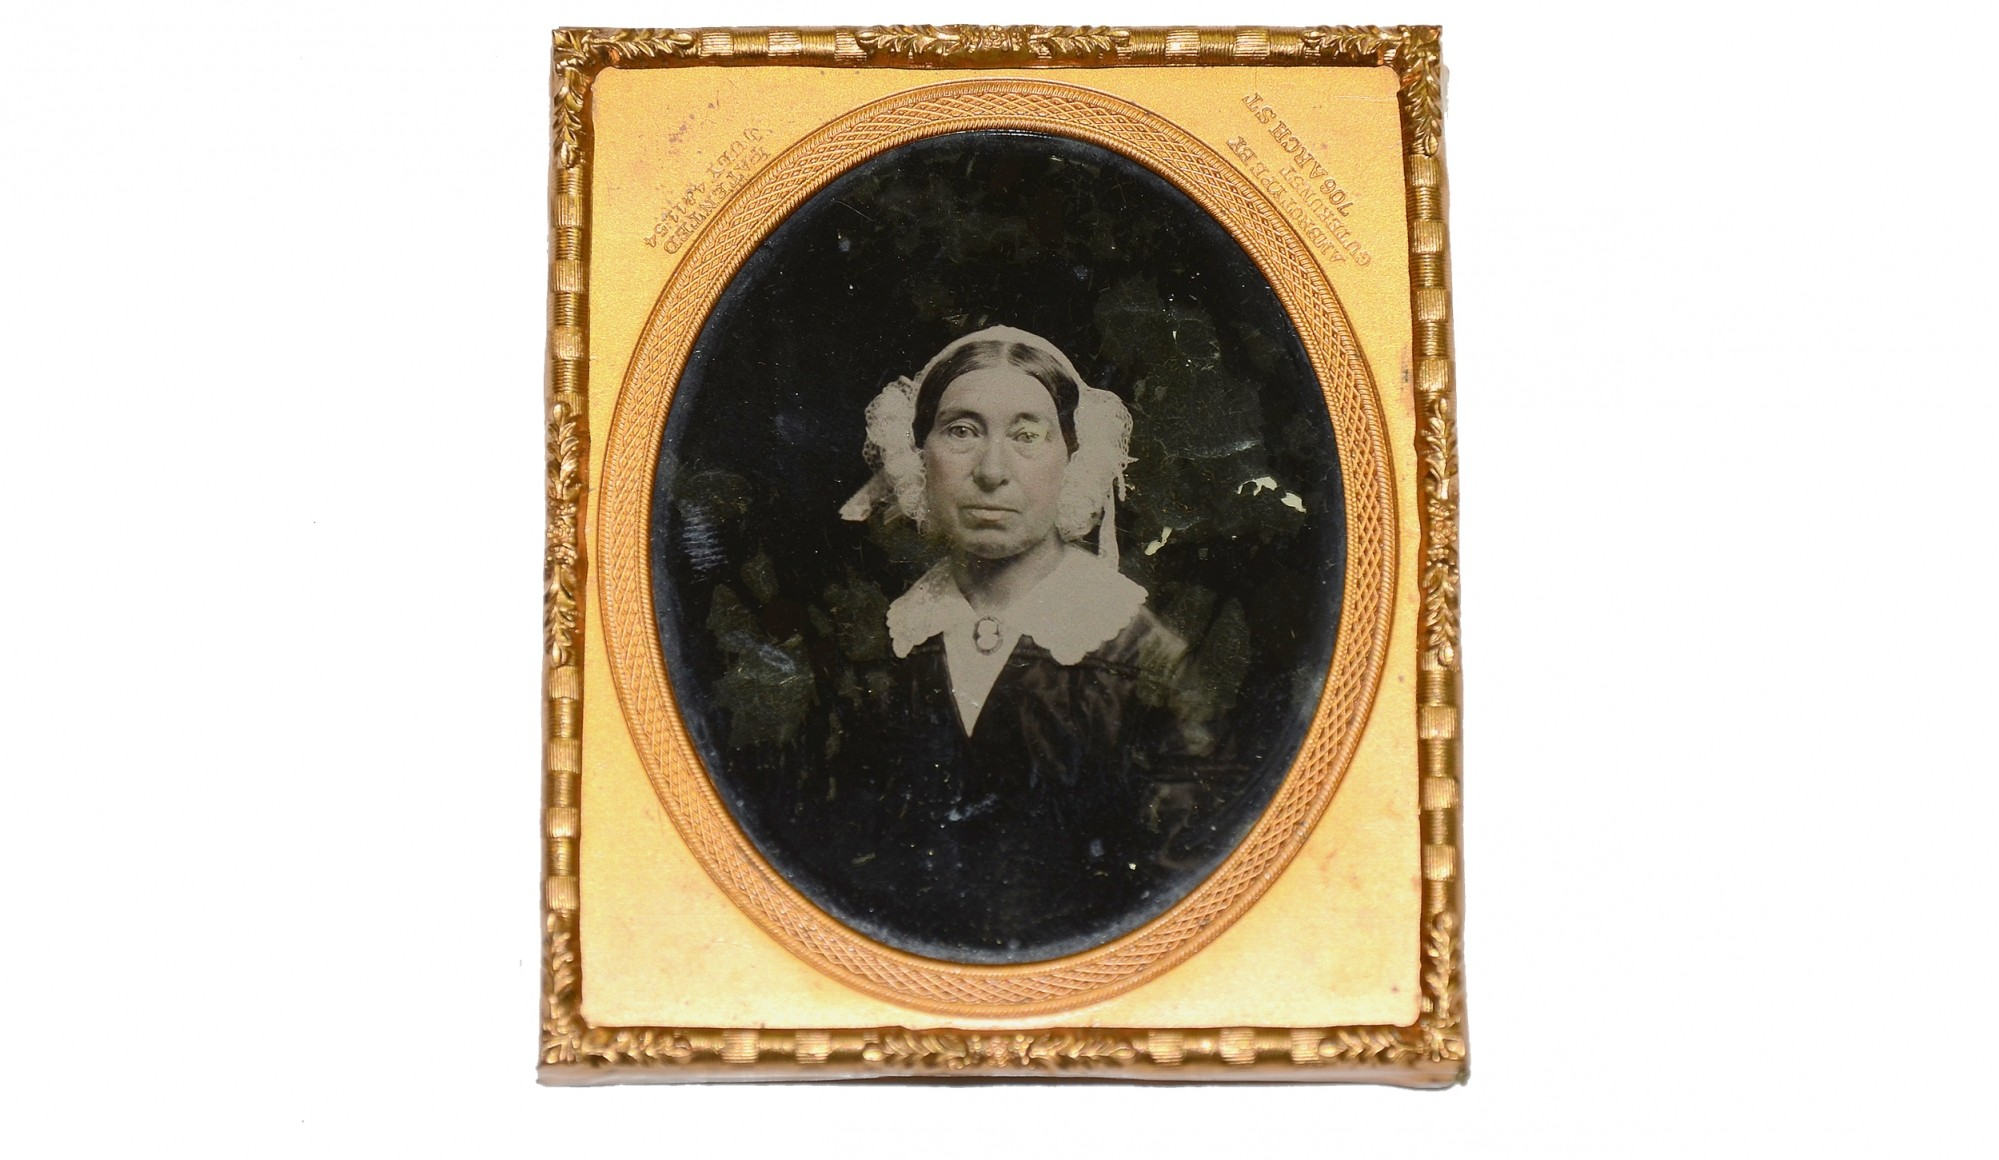 SIXTH PLATE TINTYPE OF AN OLDER WOMAN